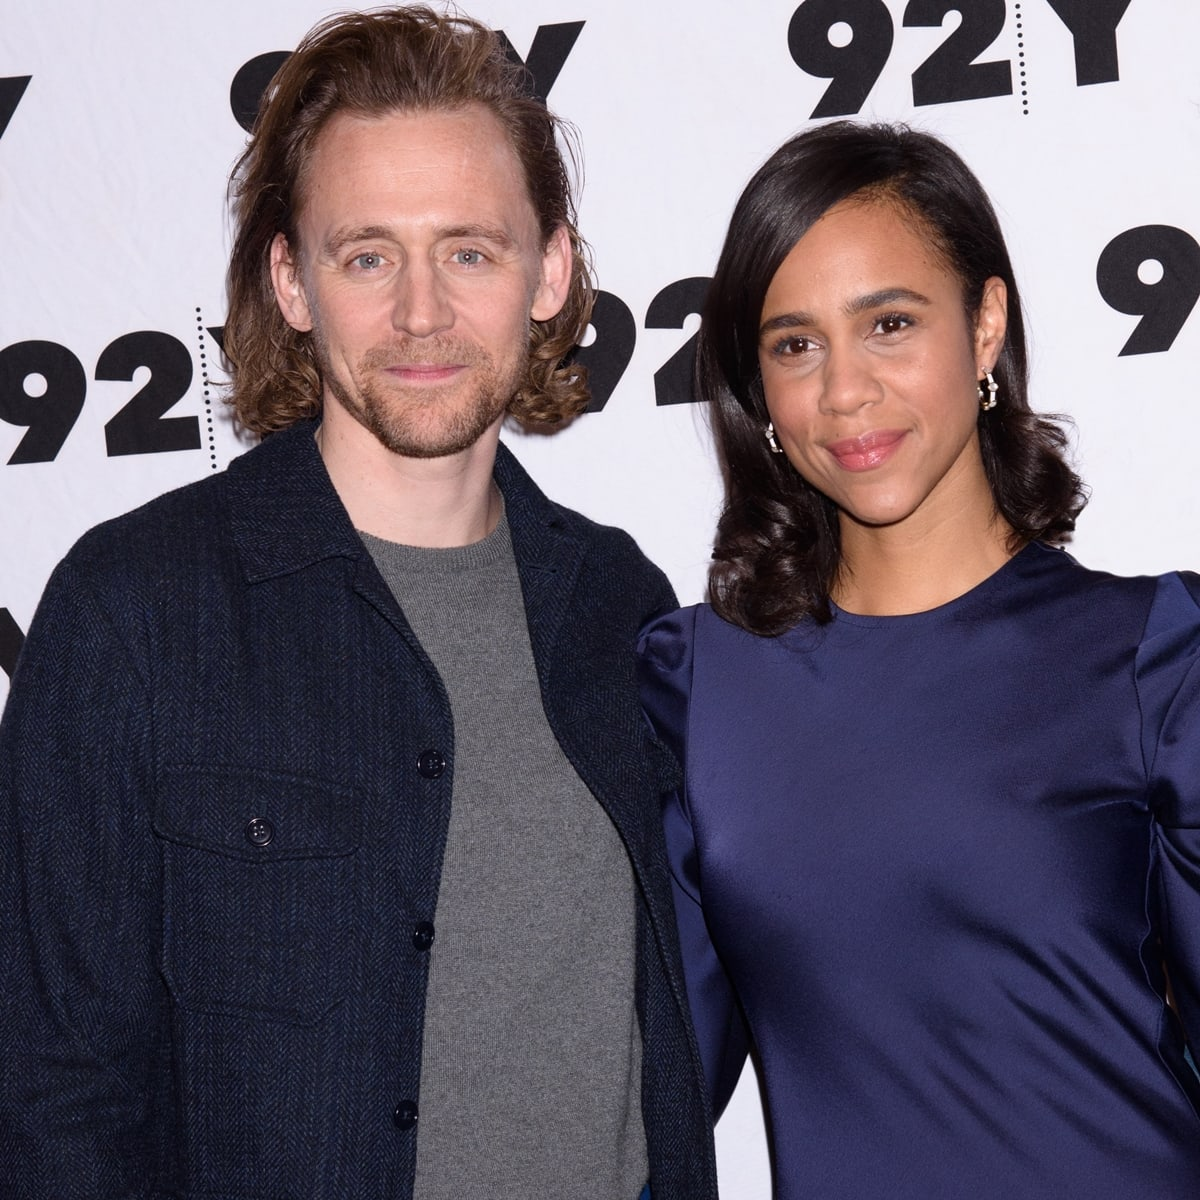 Tom Hiddleston and Zawe Ashton met in 2019 while starring together in the West End production of Betrayal in London